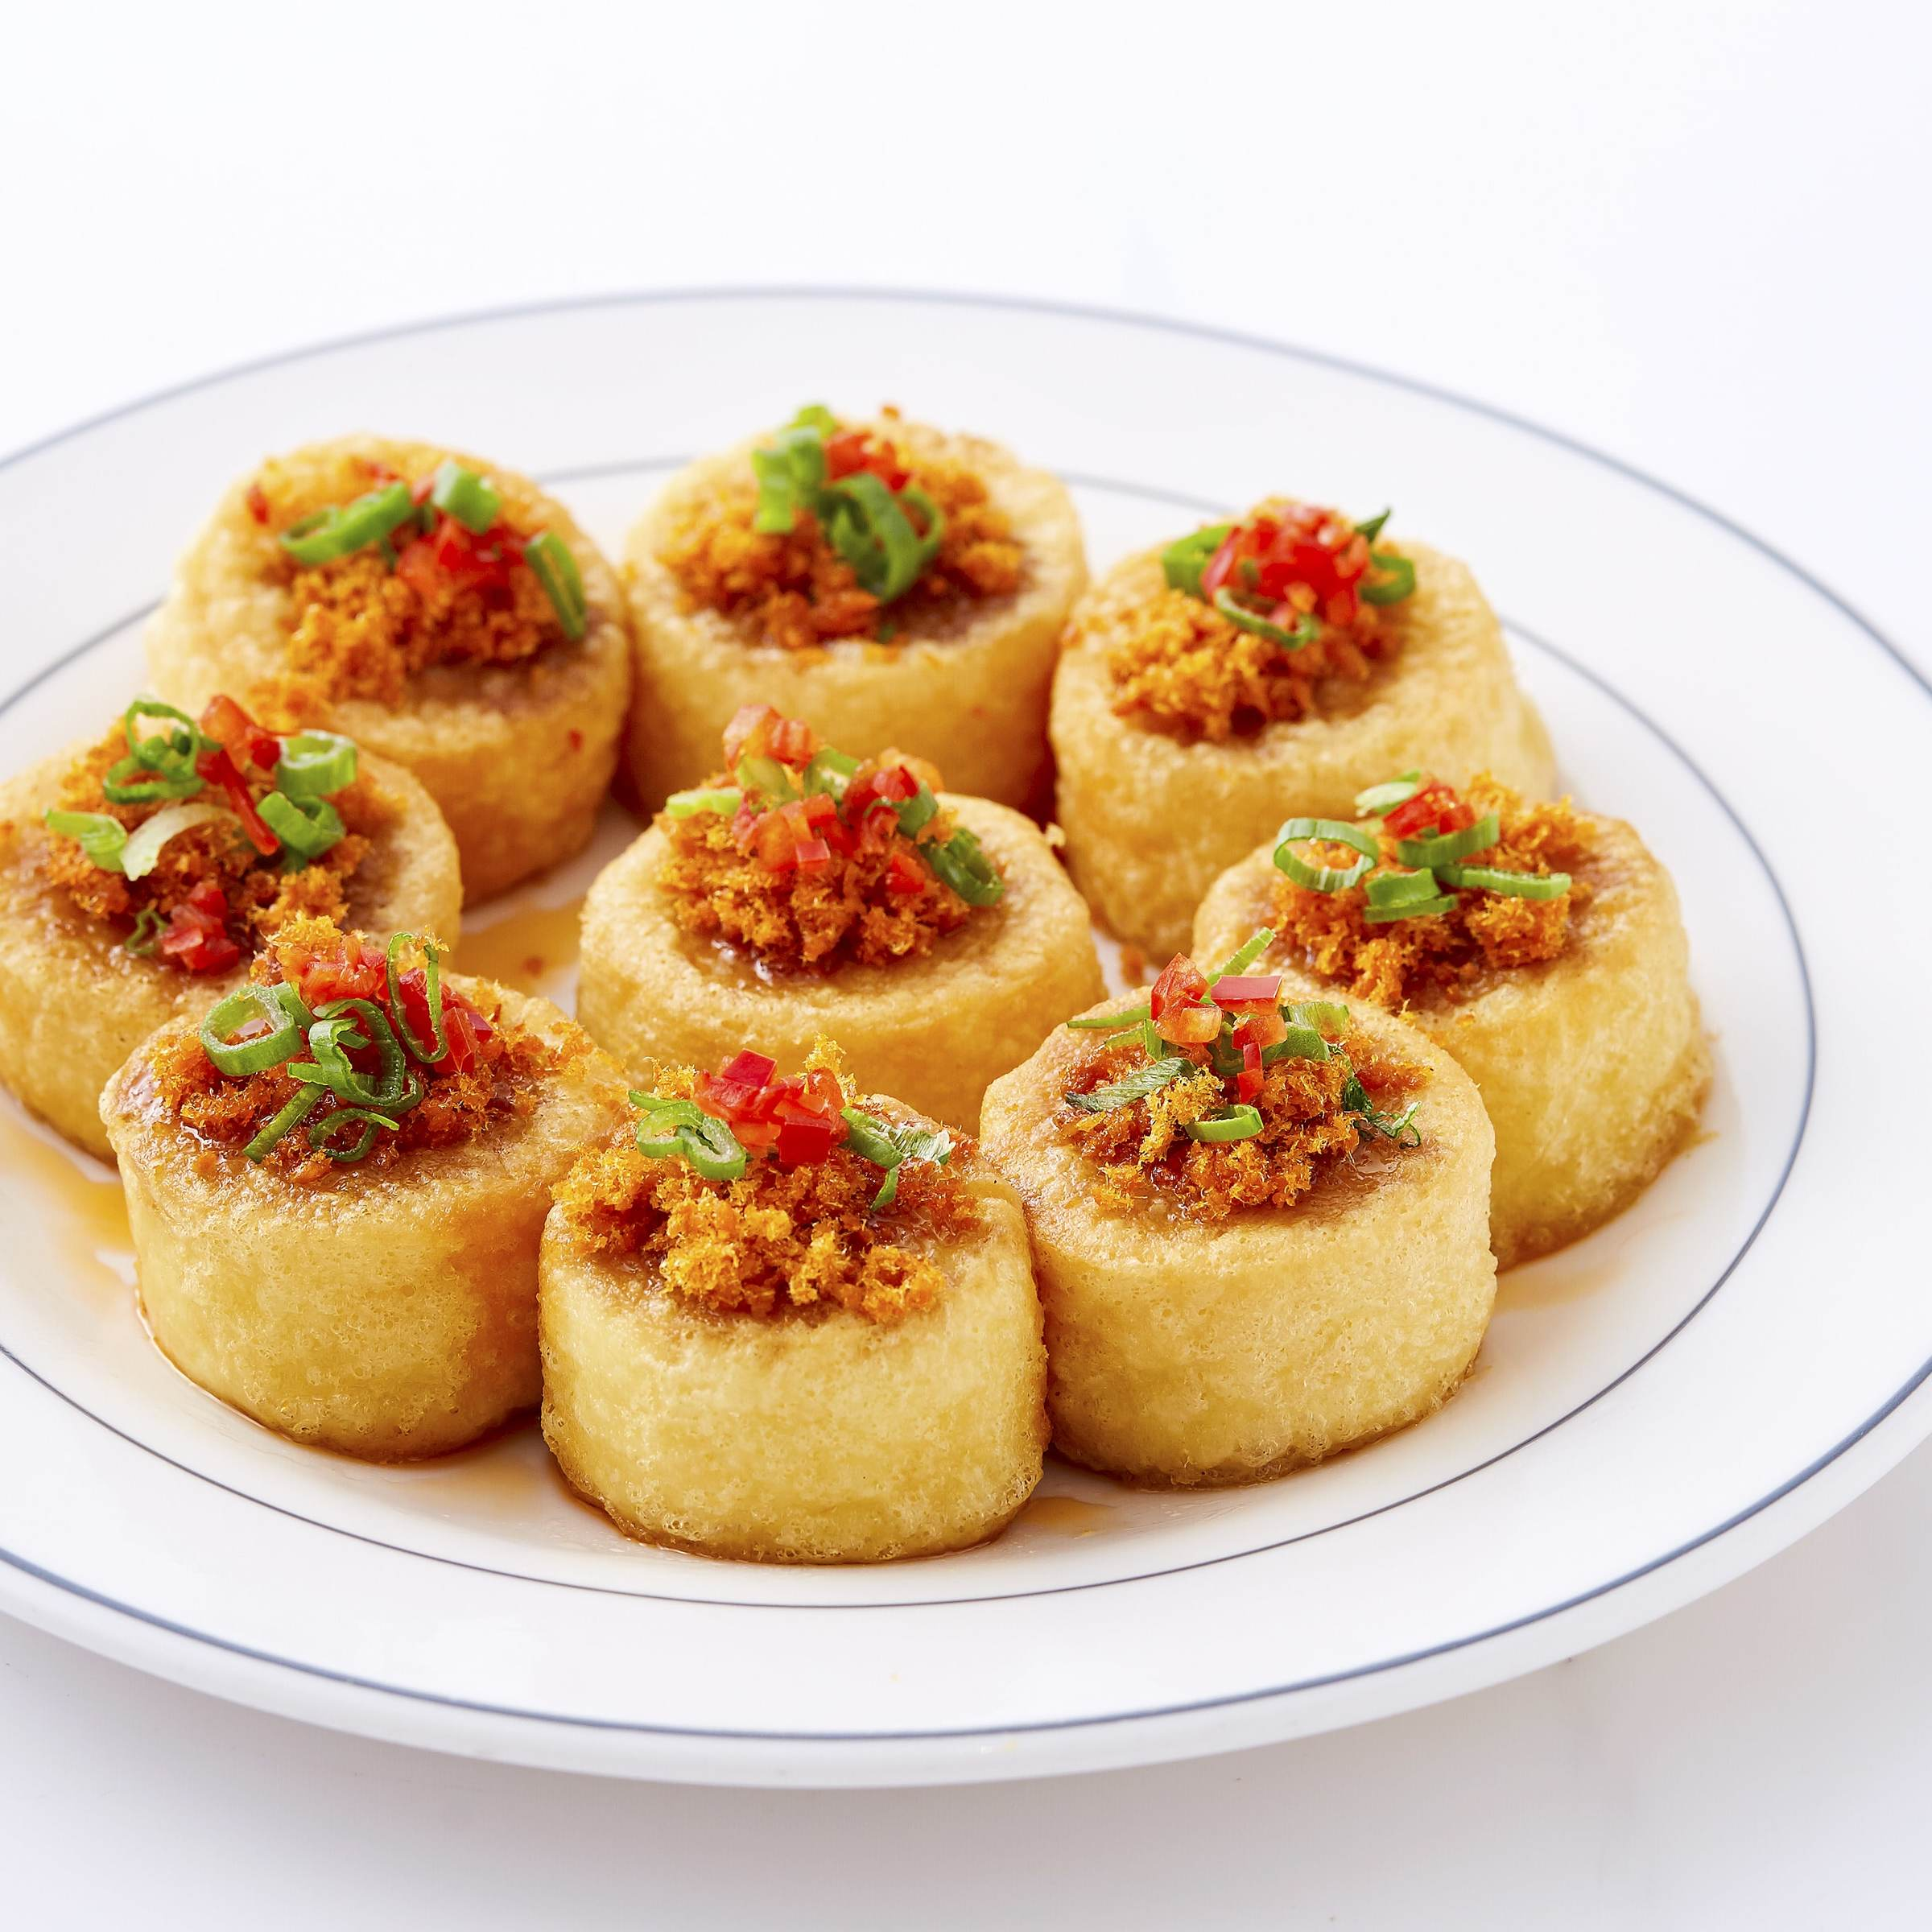 Vegetables_Fried Beancurd_a-min.jpg